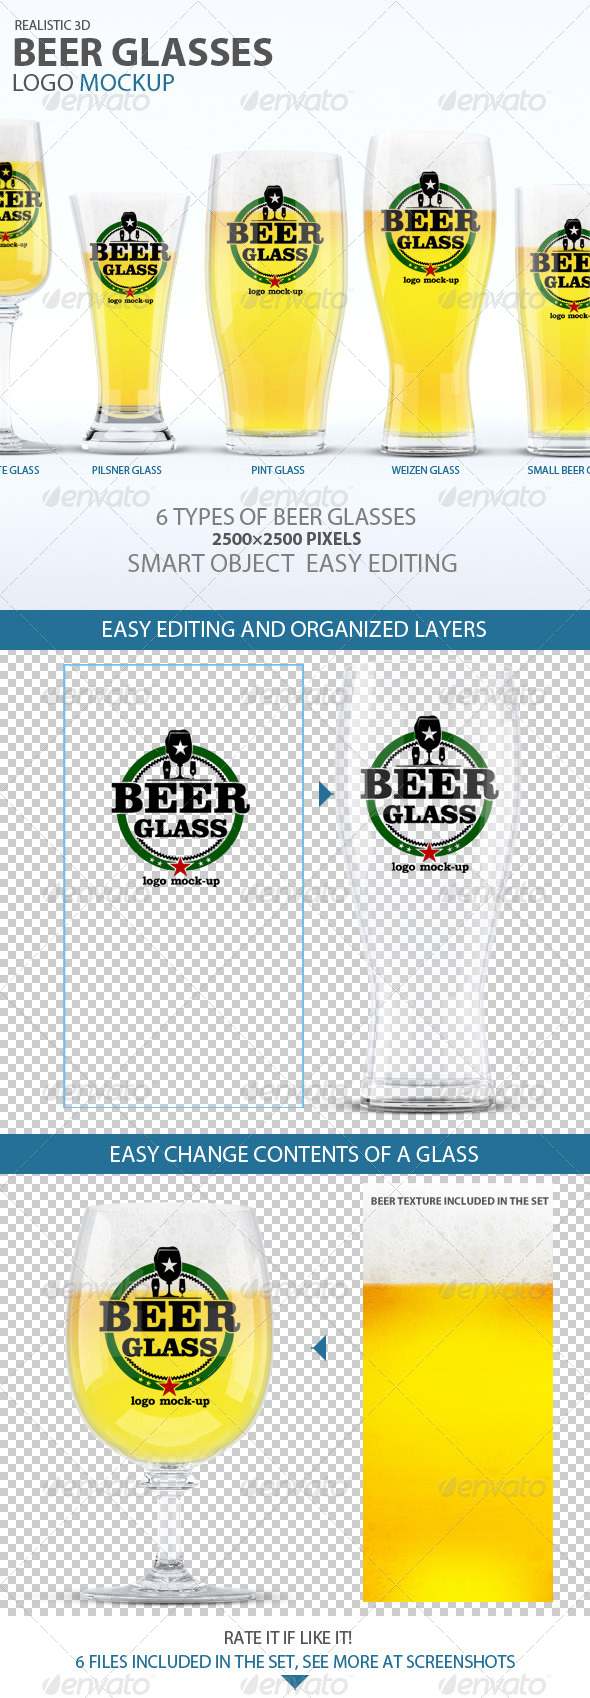 Beer Glasses Logo Mockup - Food and Drink Packaging